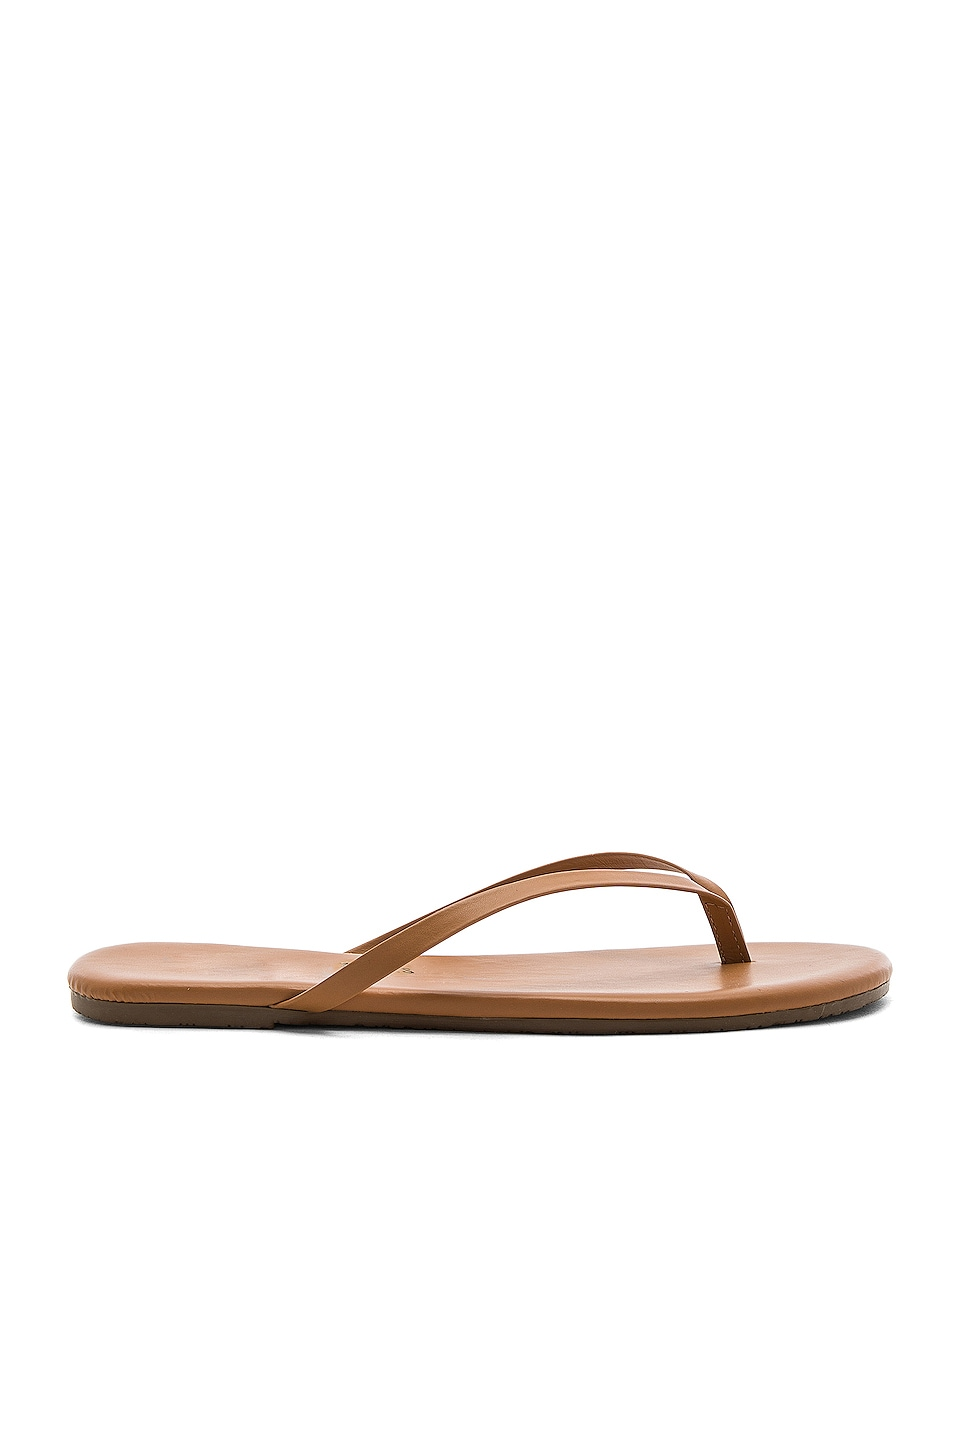 TKEES Foundations Flip Flops in Au Naturale